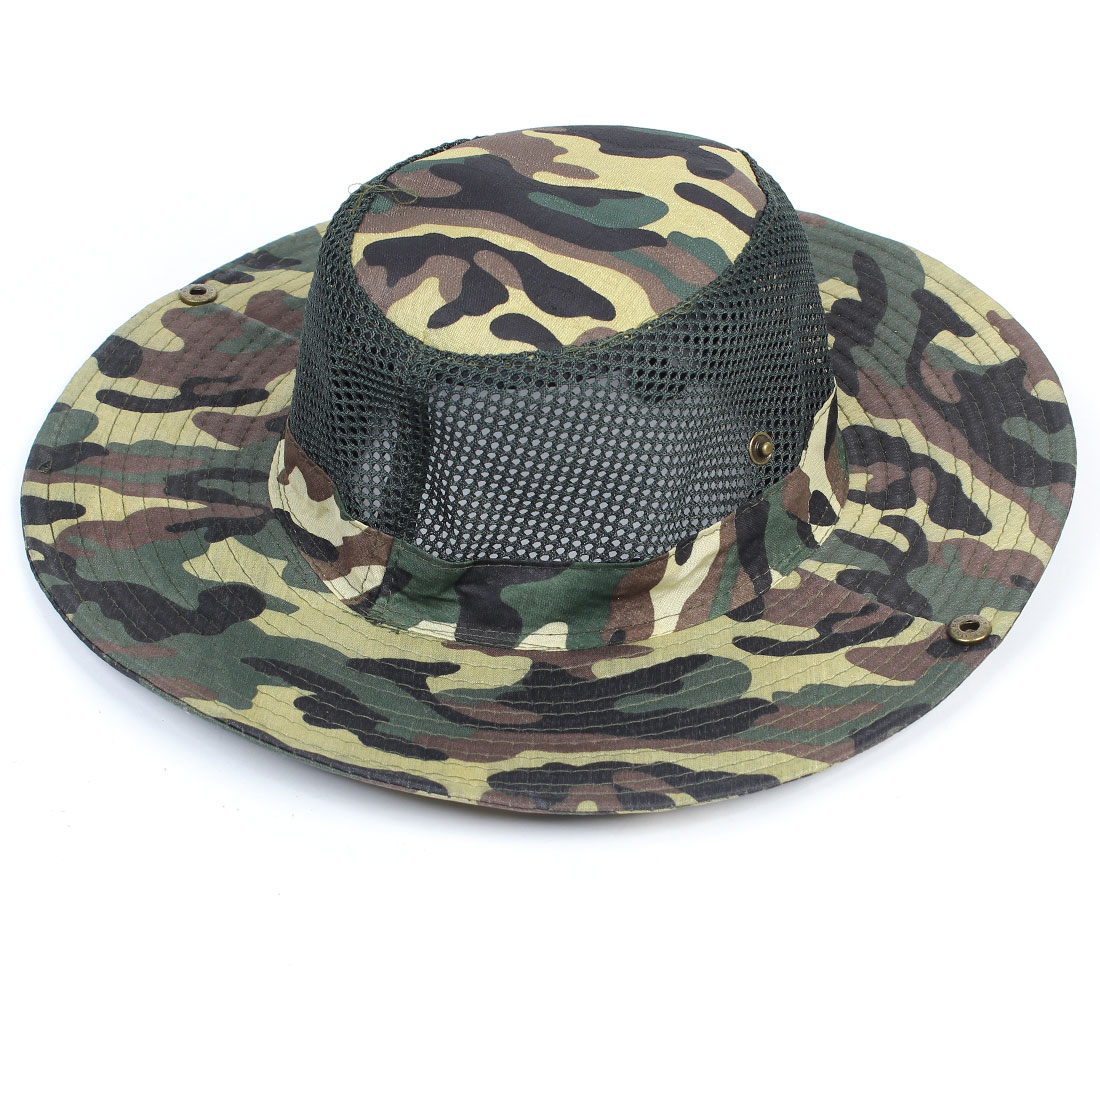 Camouflage Pattern Adjustable Mesh Style Visor Hat Cap for Fishing